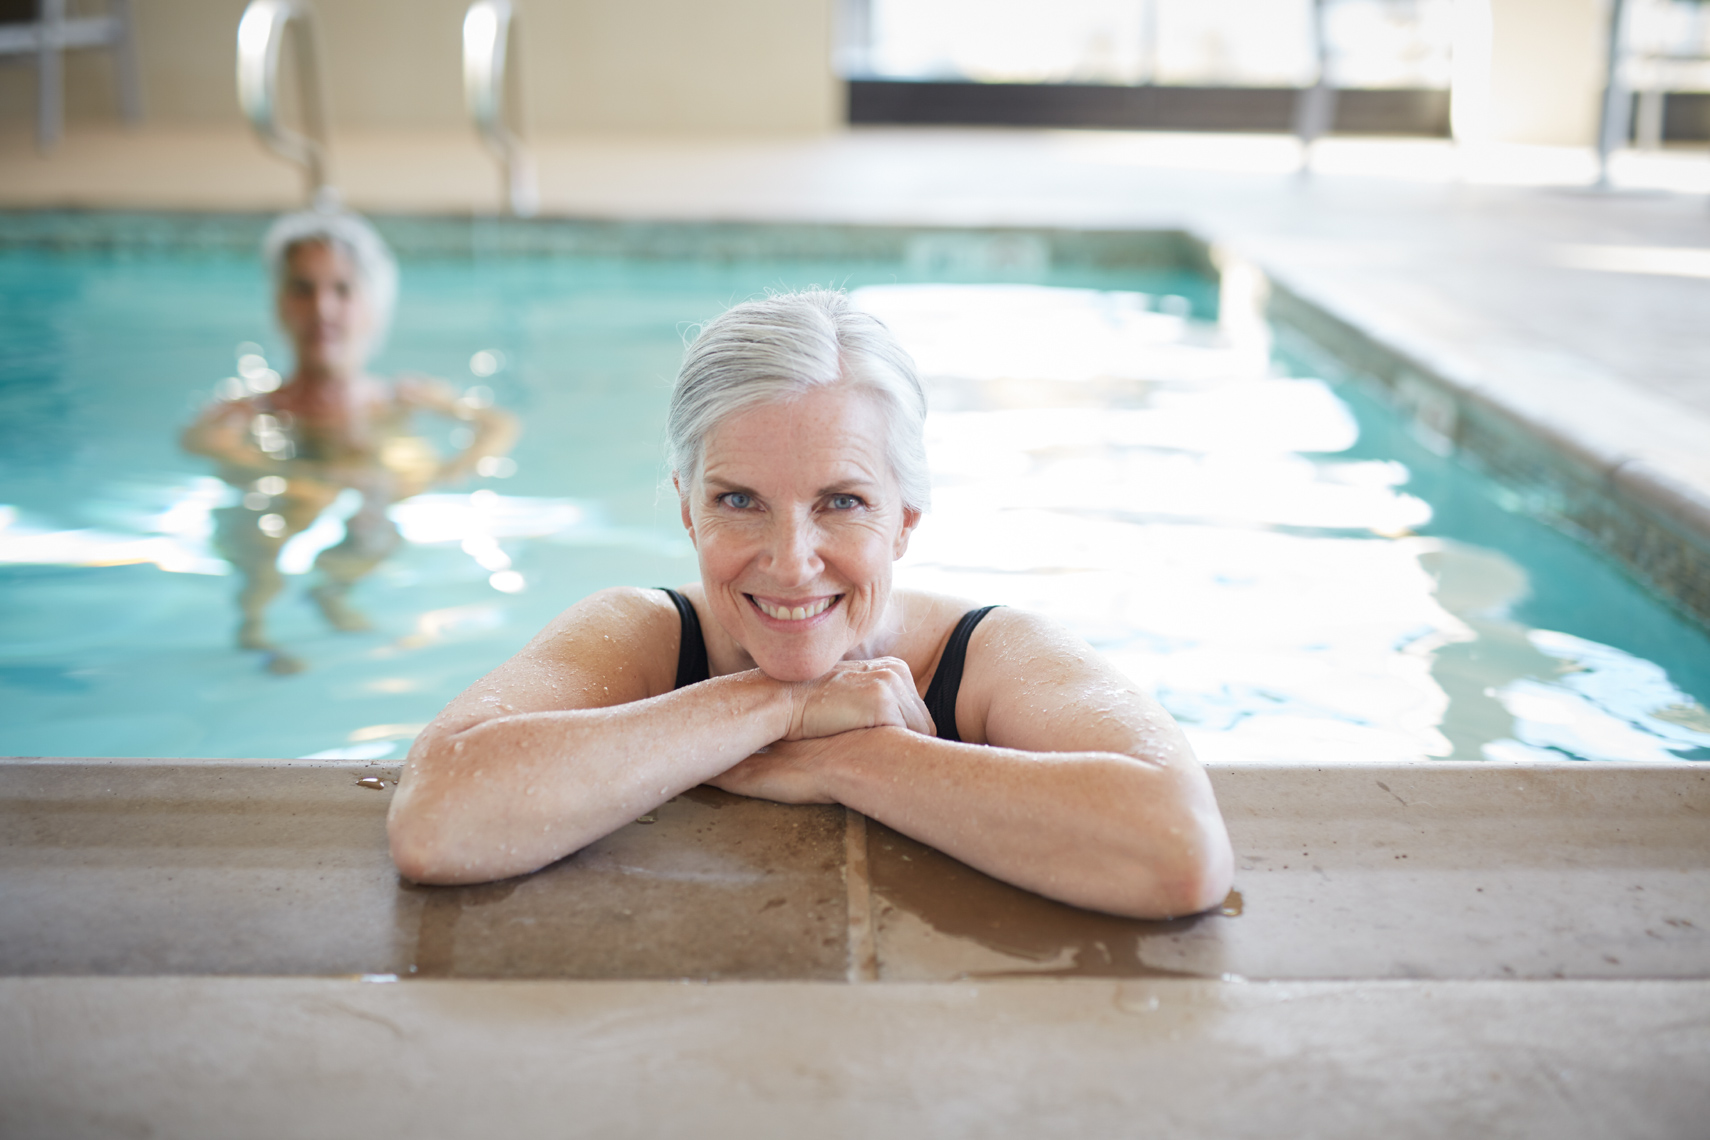 Elderly woman stands in an indoor pool looking at the camera her crossed arms over the pool combing